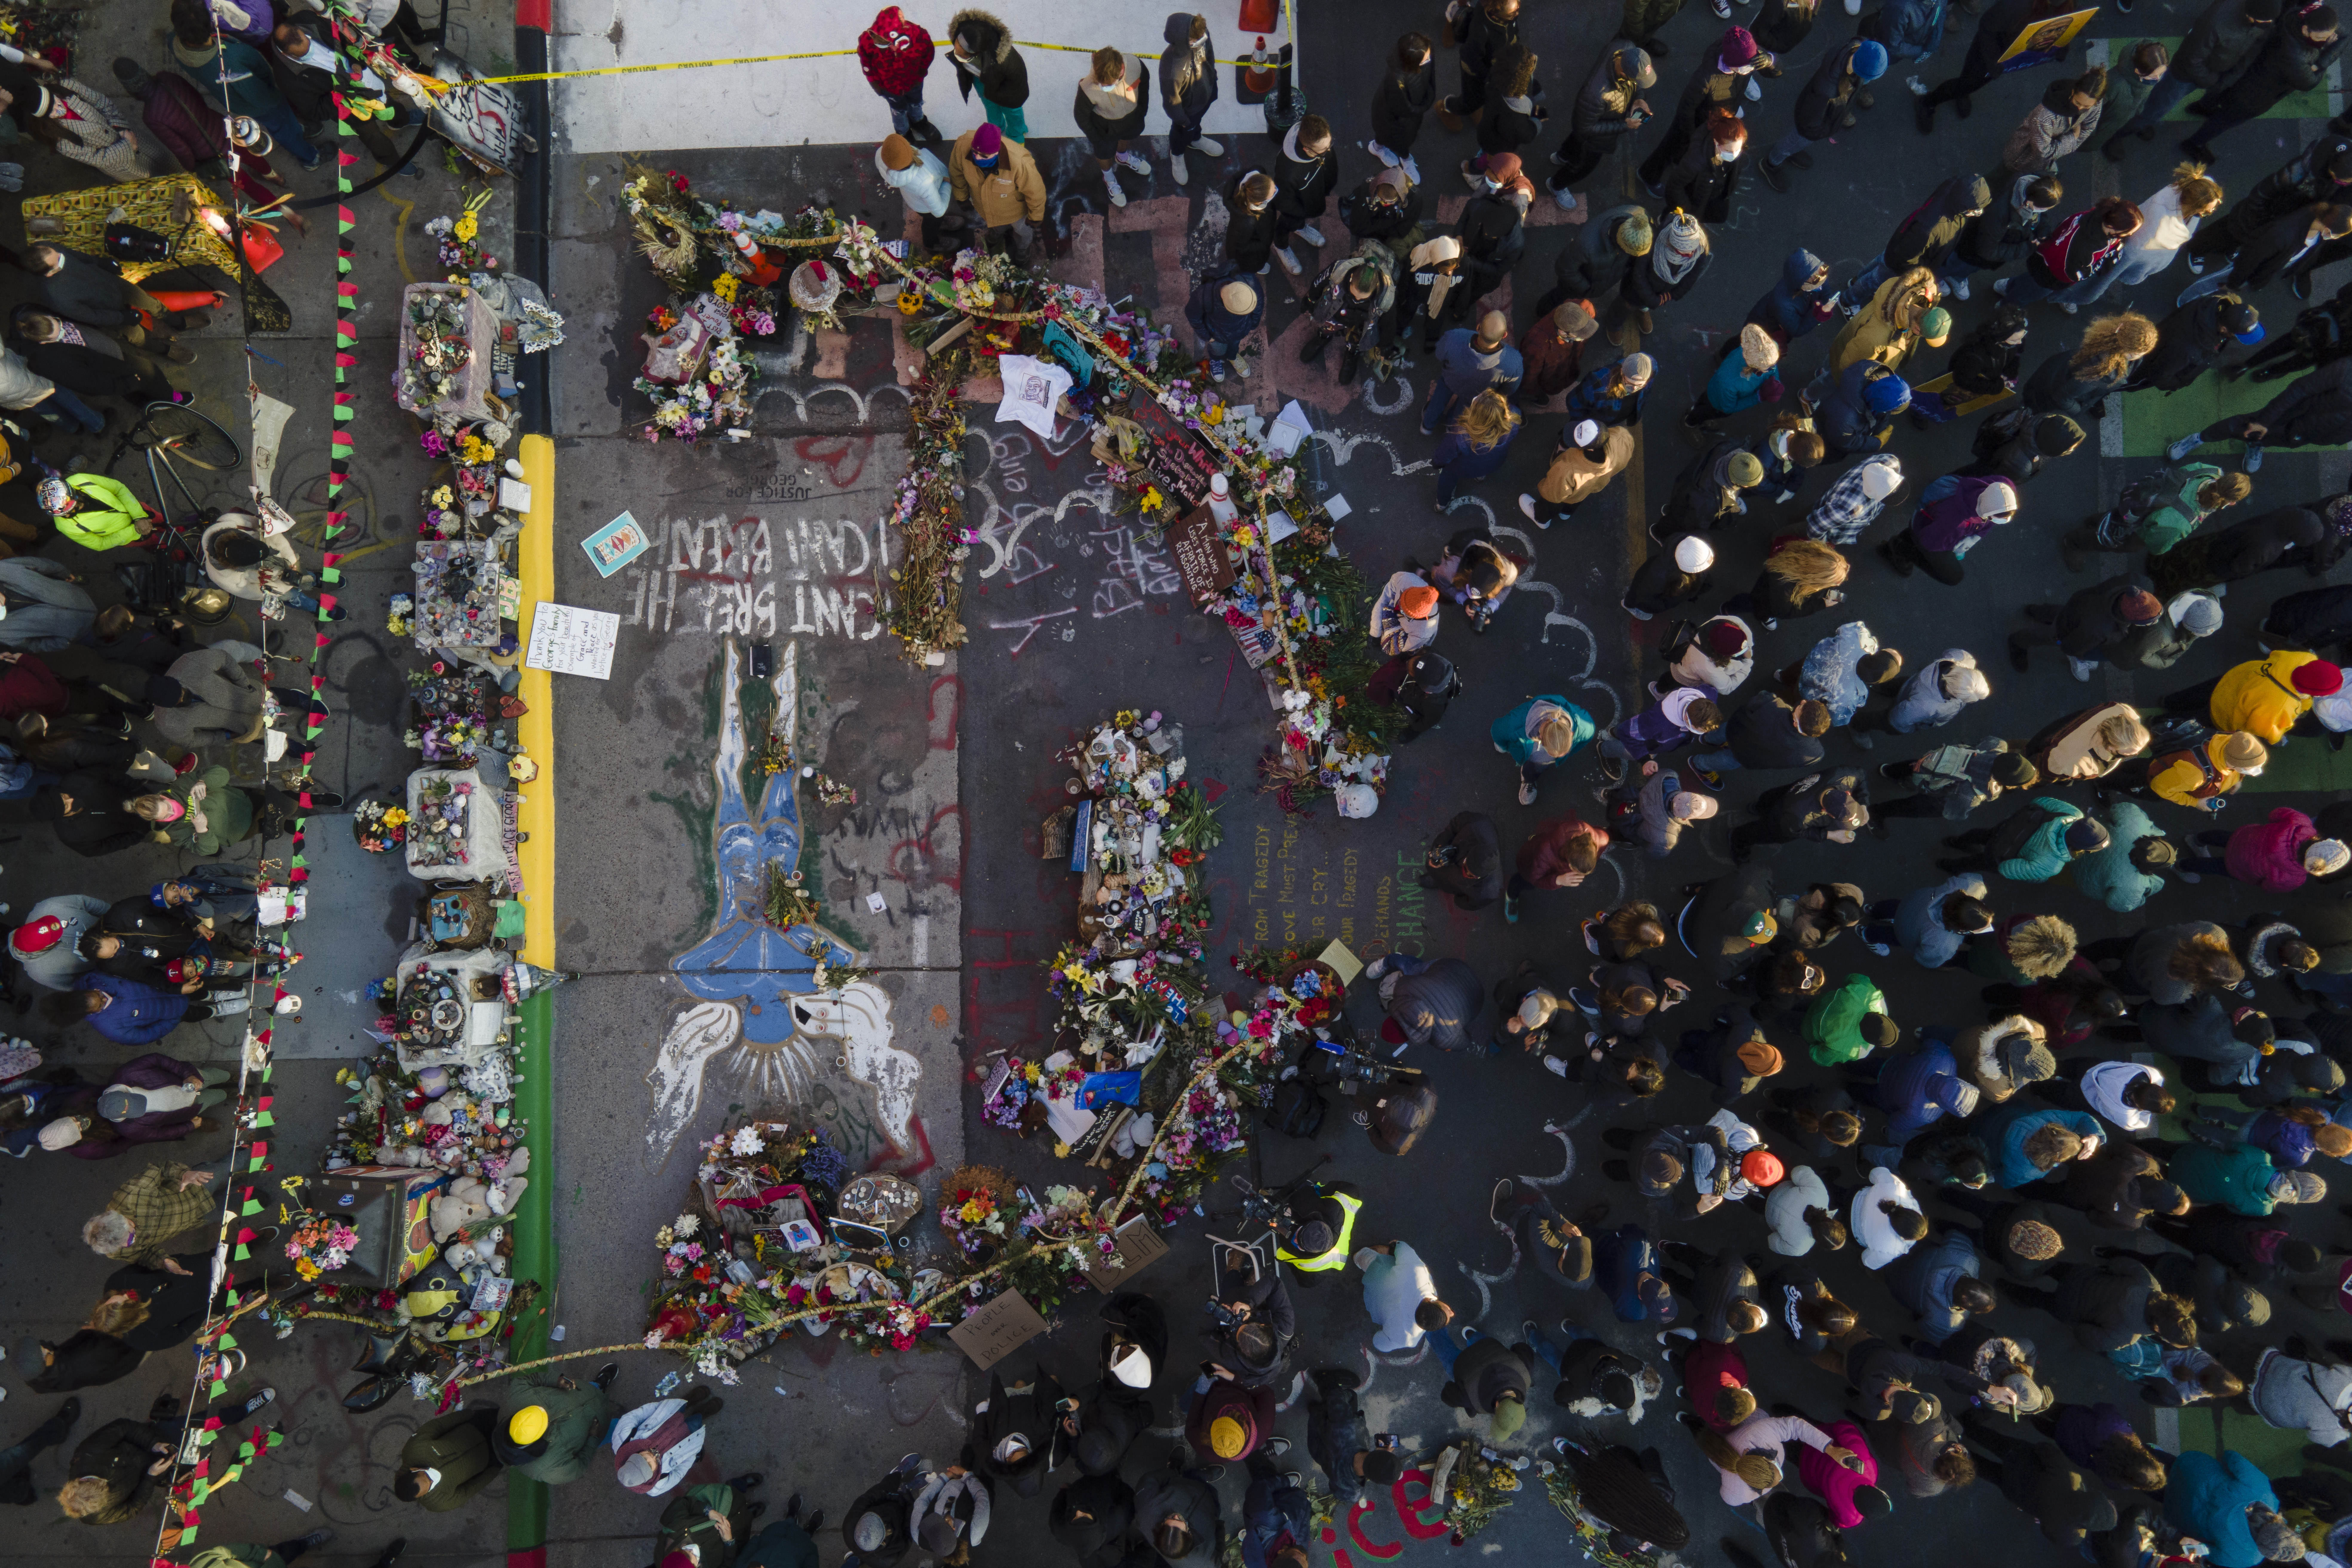 A crowd gathers next to the spot where George Floyd was murdered at George Floyd Square after a guilty verdict was announced at the trial of former Minneapolis police Officer Derek Chauvin for the 2020 death of Floyd, Tuesday, April 20, 2021, in Minneapolis.